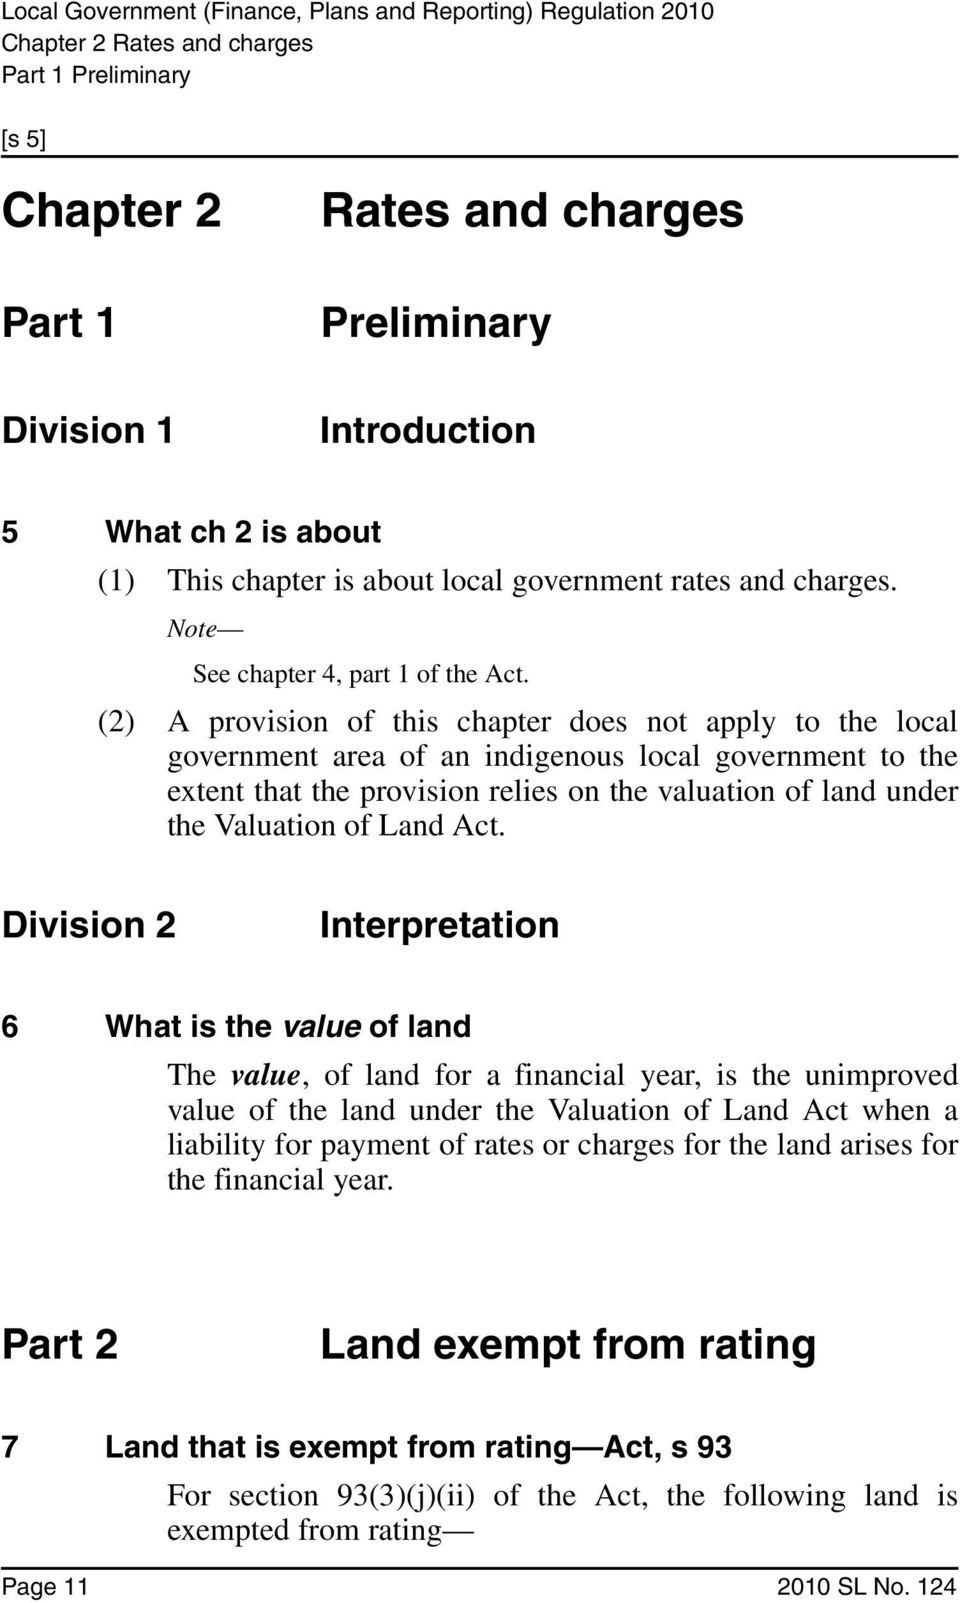 (2) A provision of this chapter does not apply to the local government area of an indigenous local government to the extent that the provision relies on the valuation of land under the Valuation of